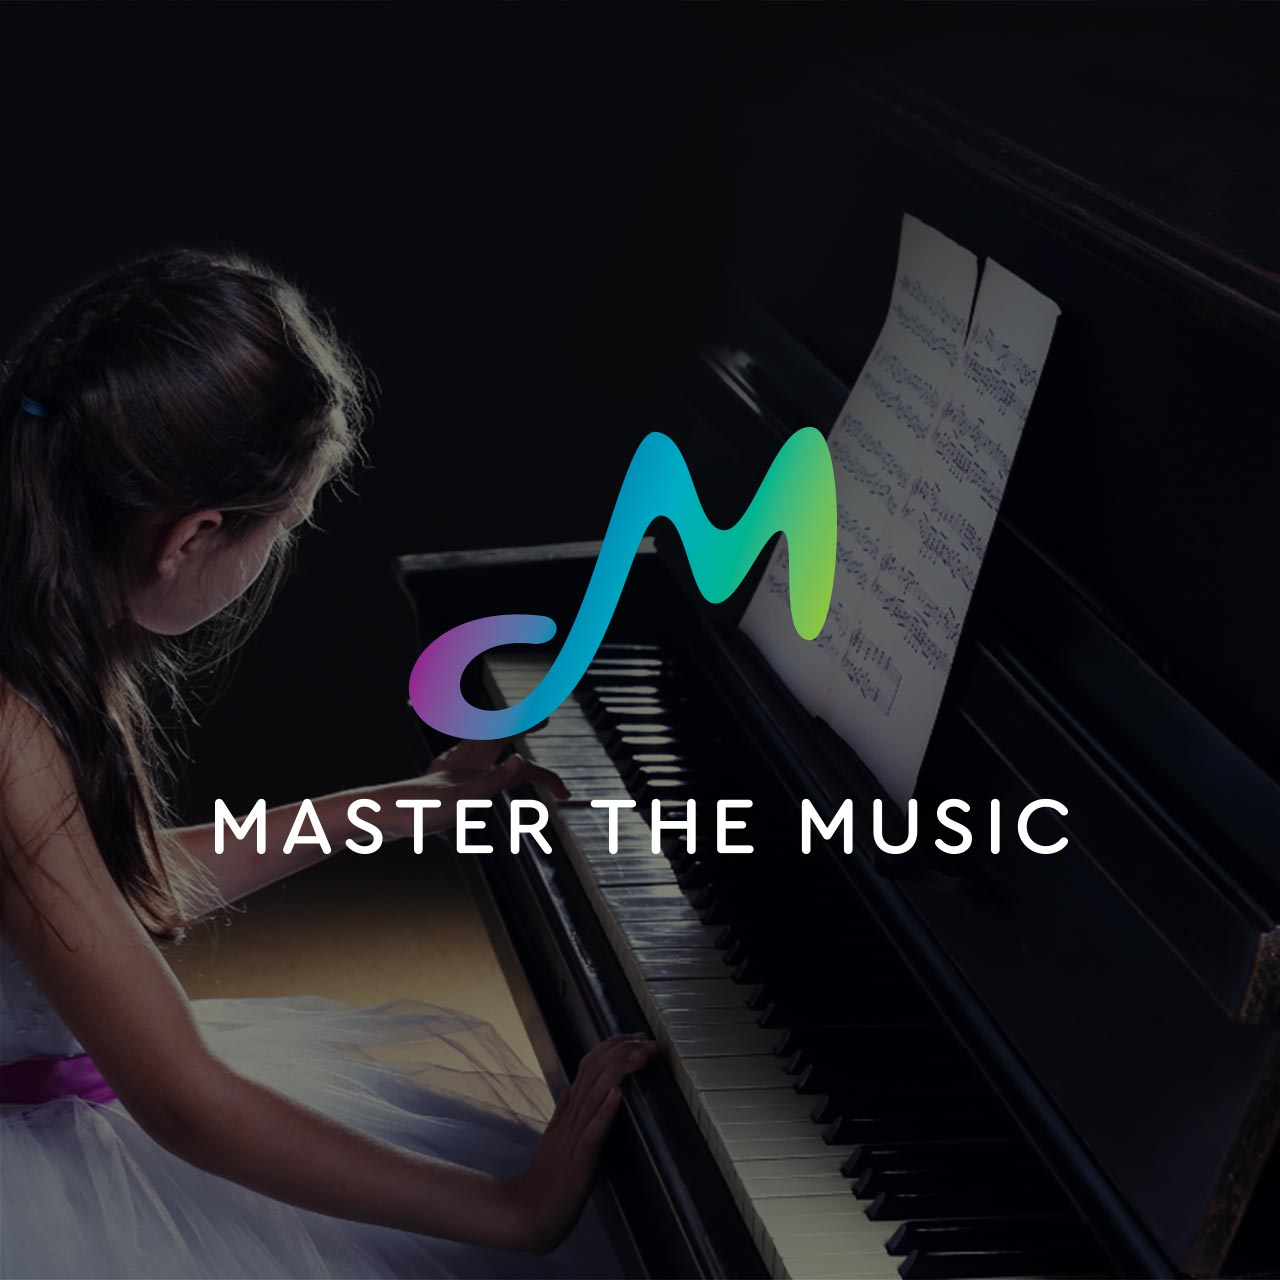 Master the Music